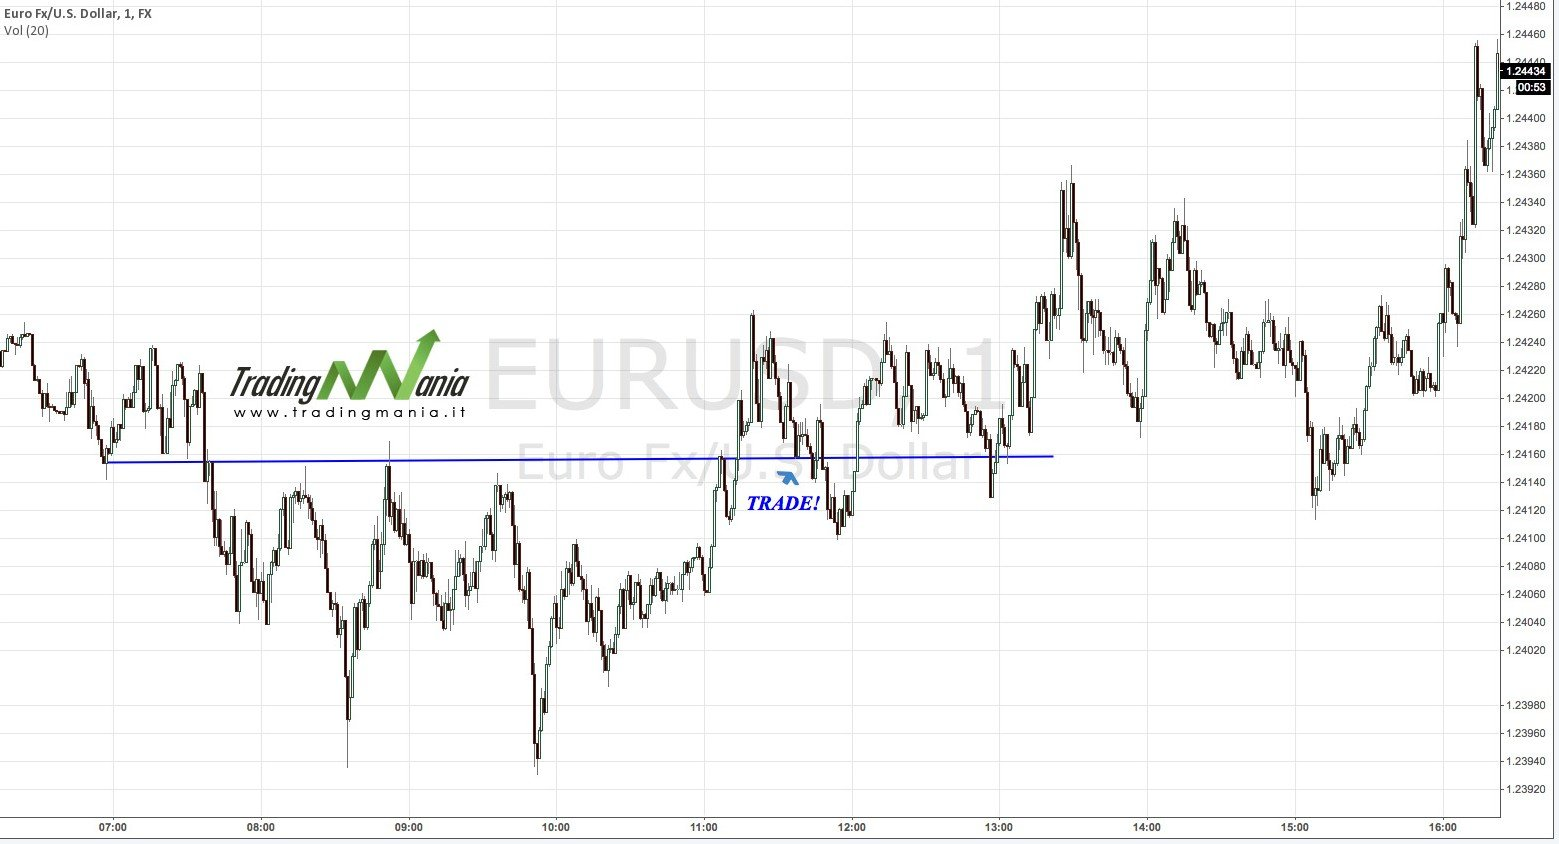 EURUSD - intraday - 1m